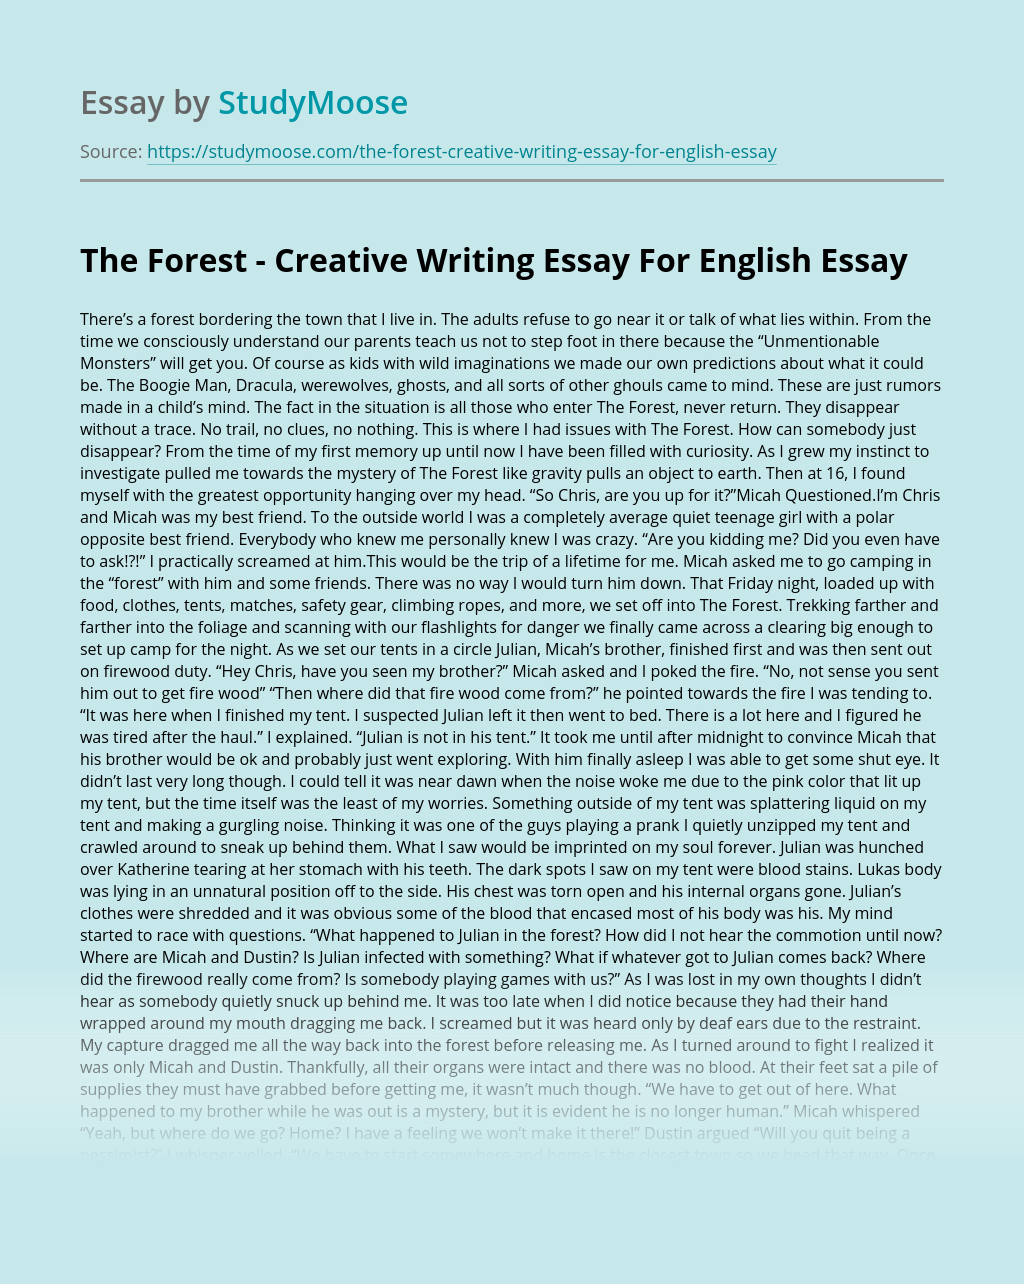 The Forest - Creative Writing Essay For English